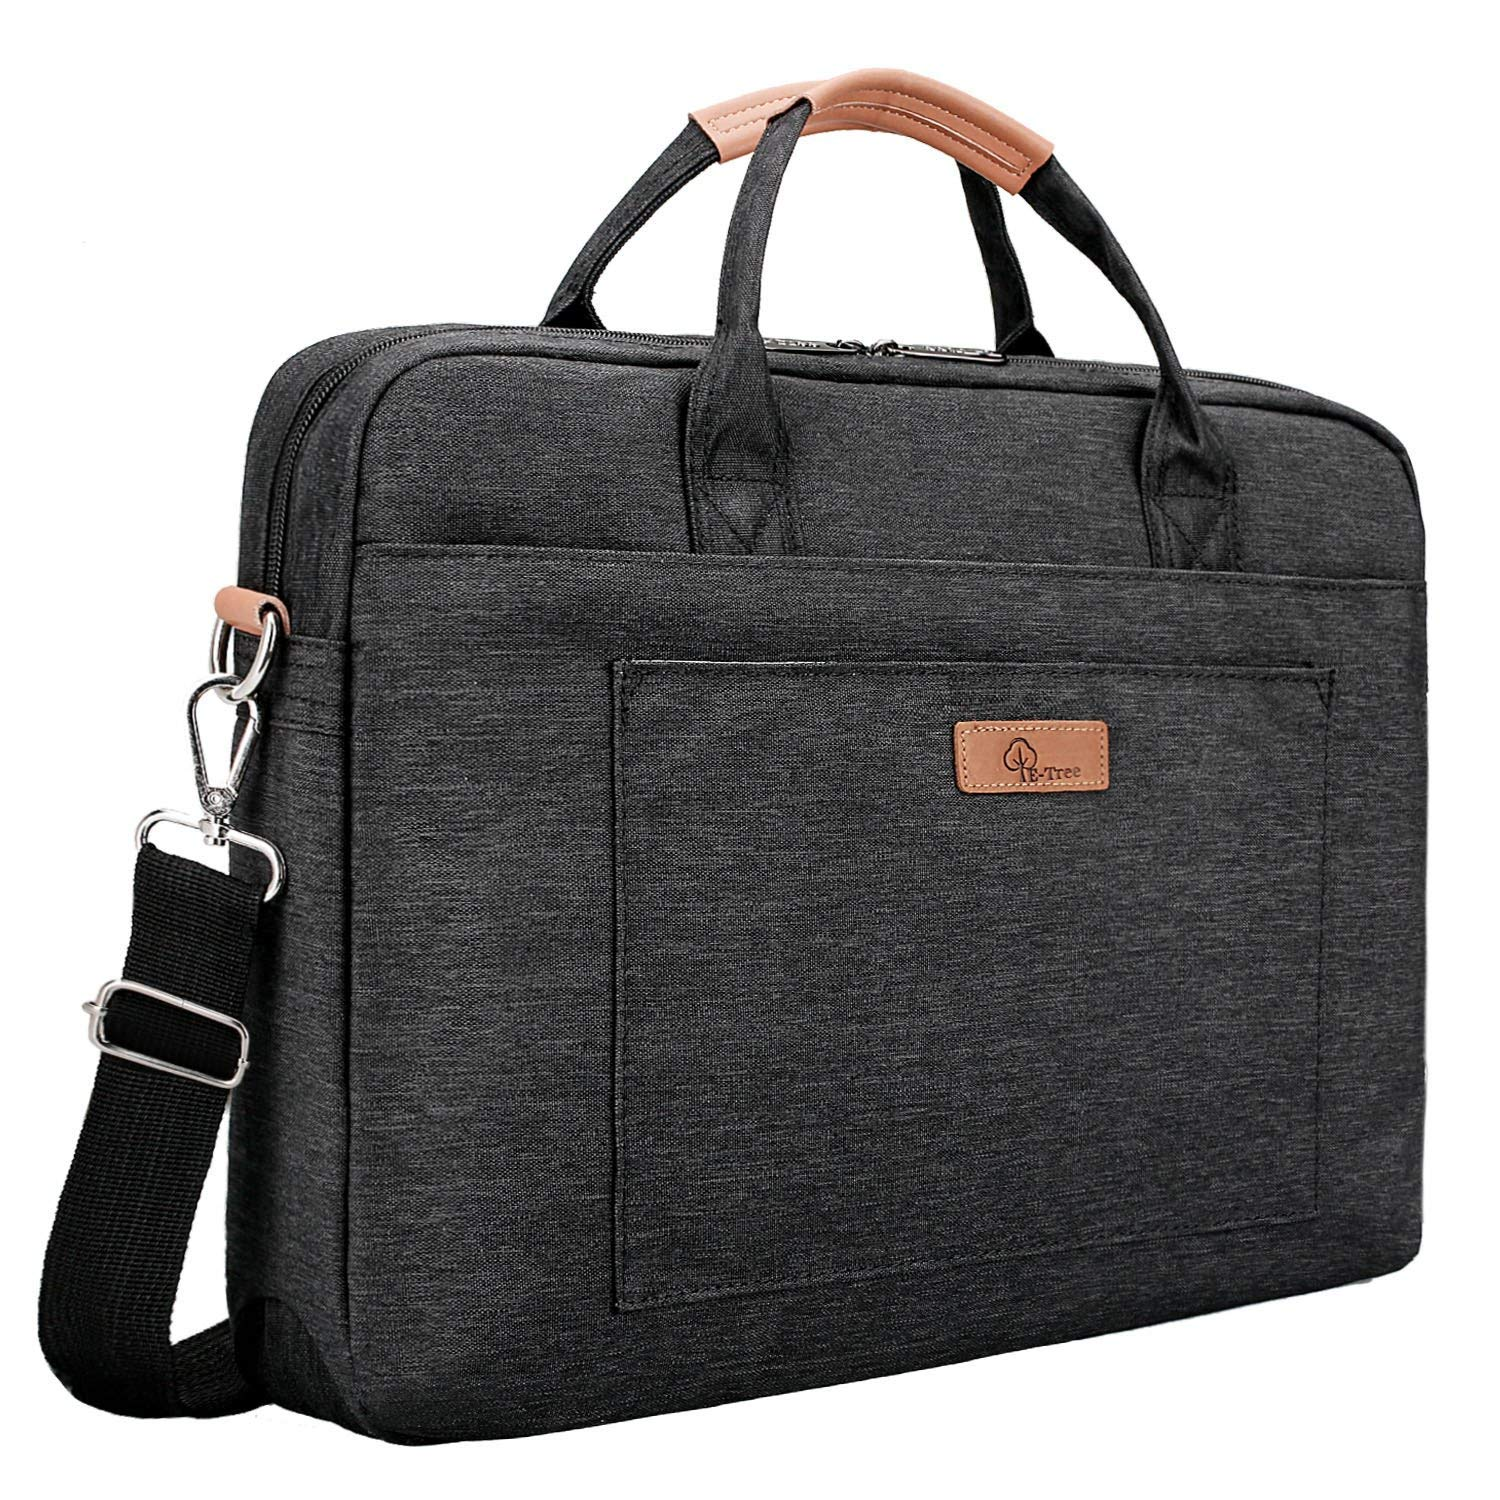 E-Tree 15.6 inch Laptop Sleeve 15 inches Shockproof Foam Computer Shoulder Bag by E-Tree